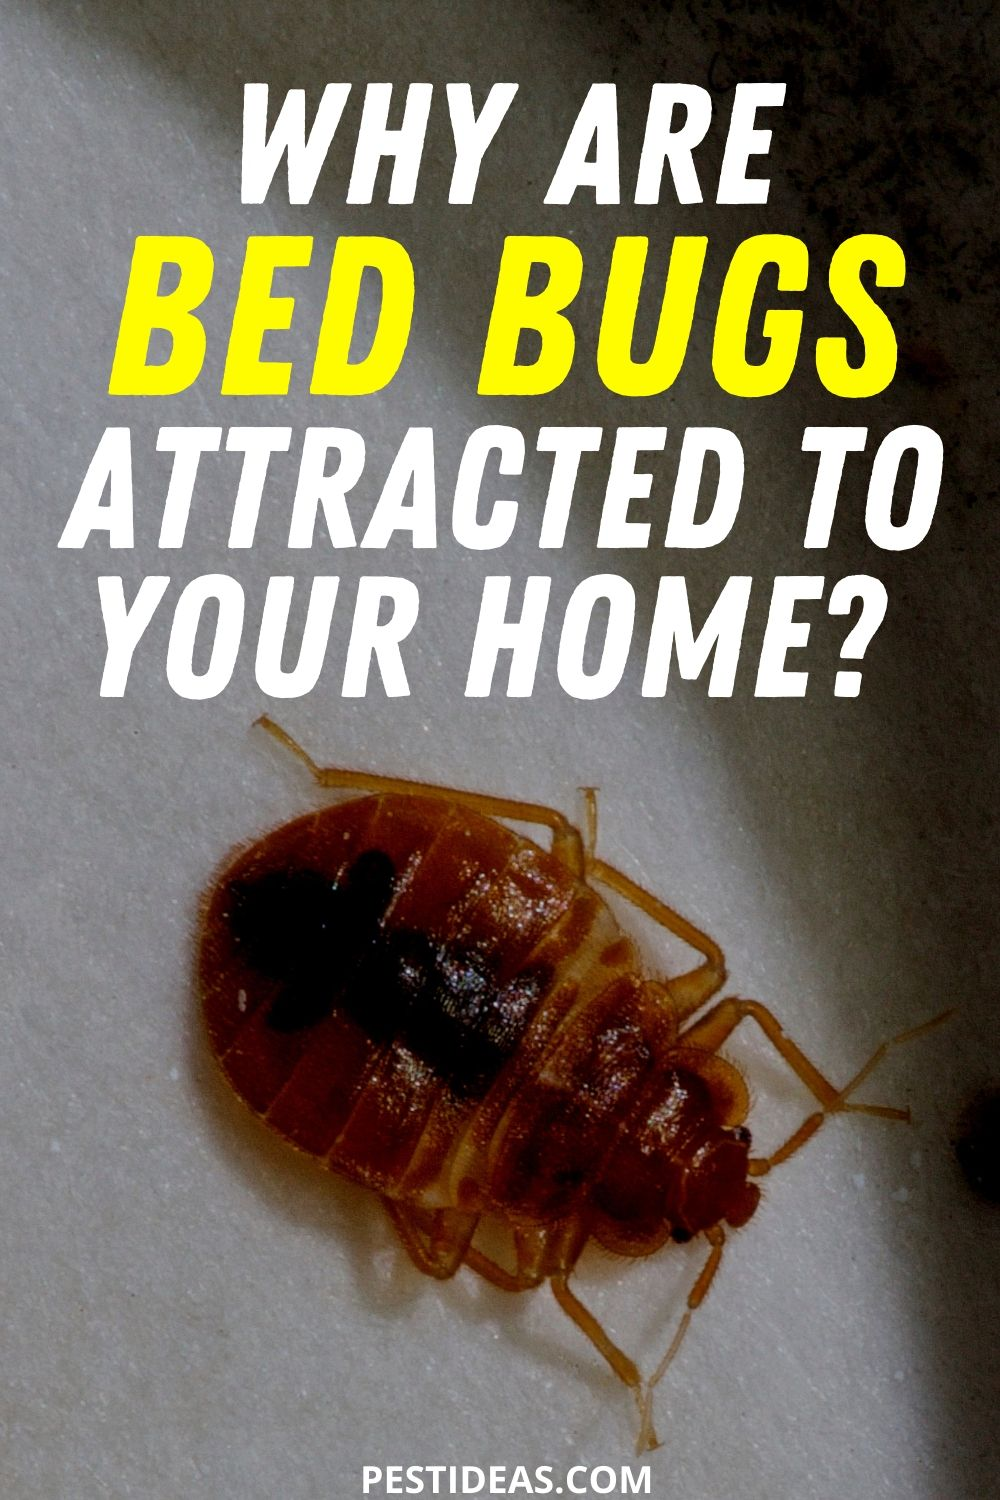 Why are bed bugs attracted to your home